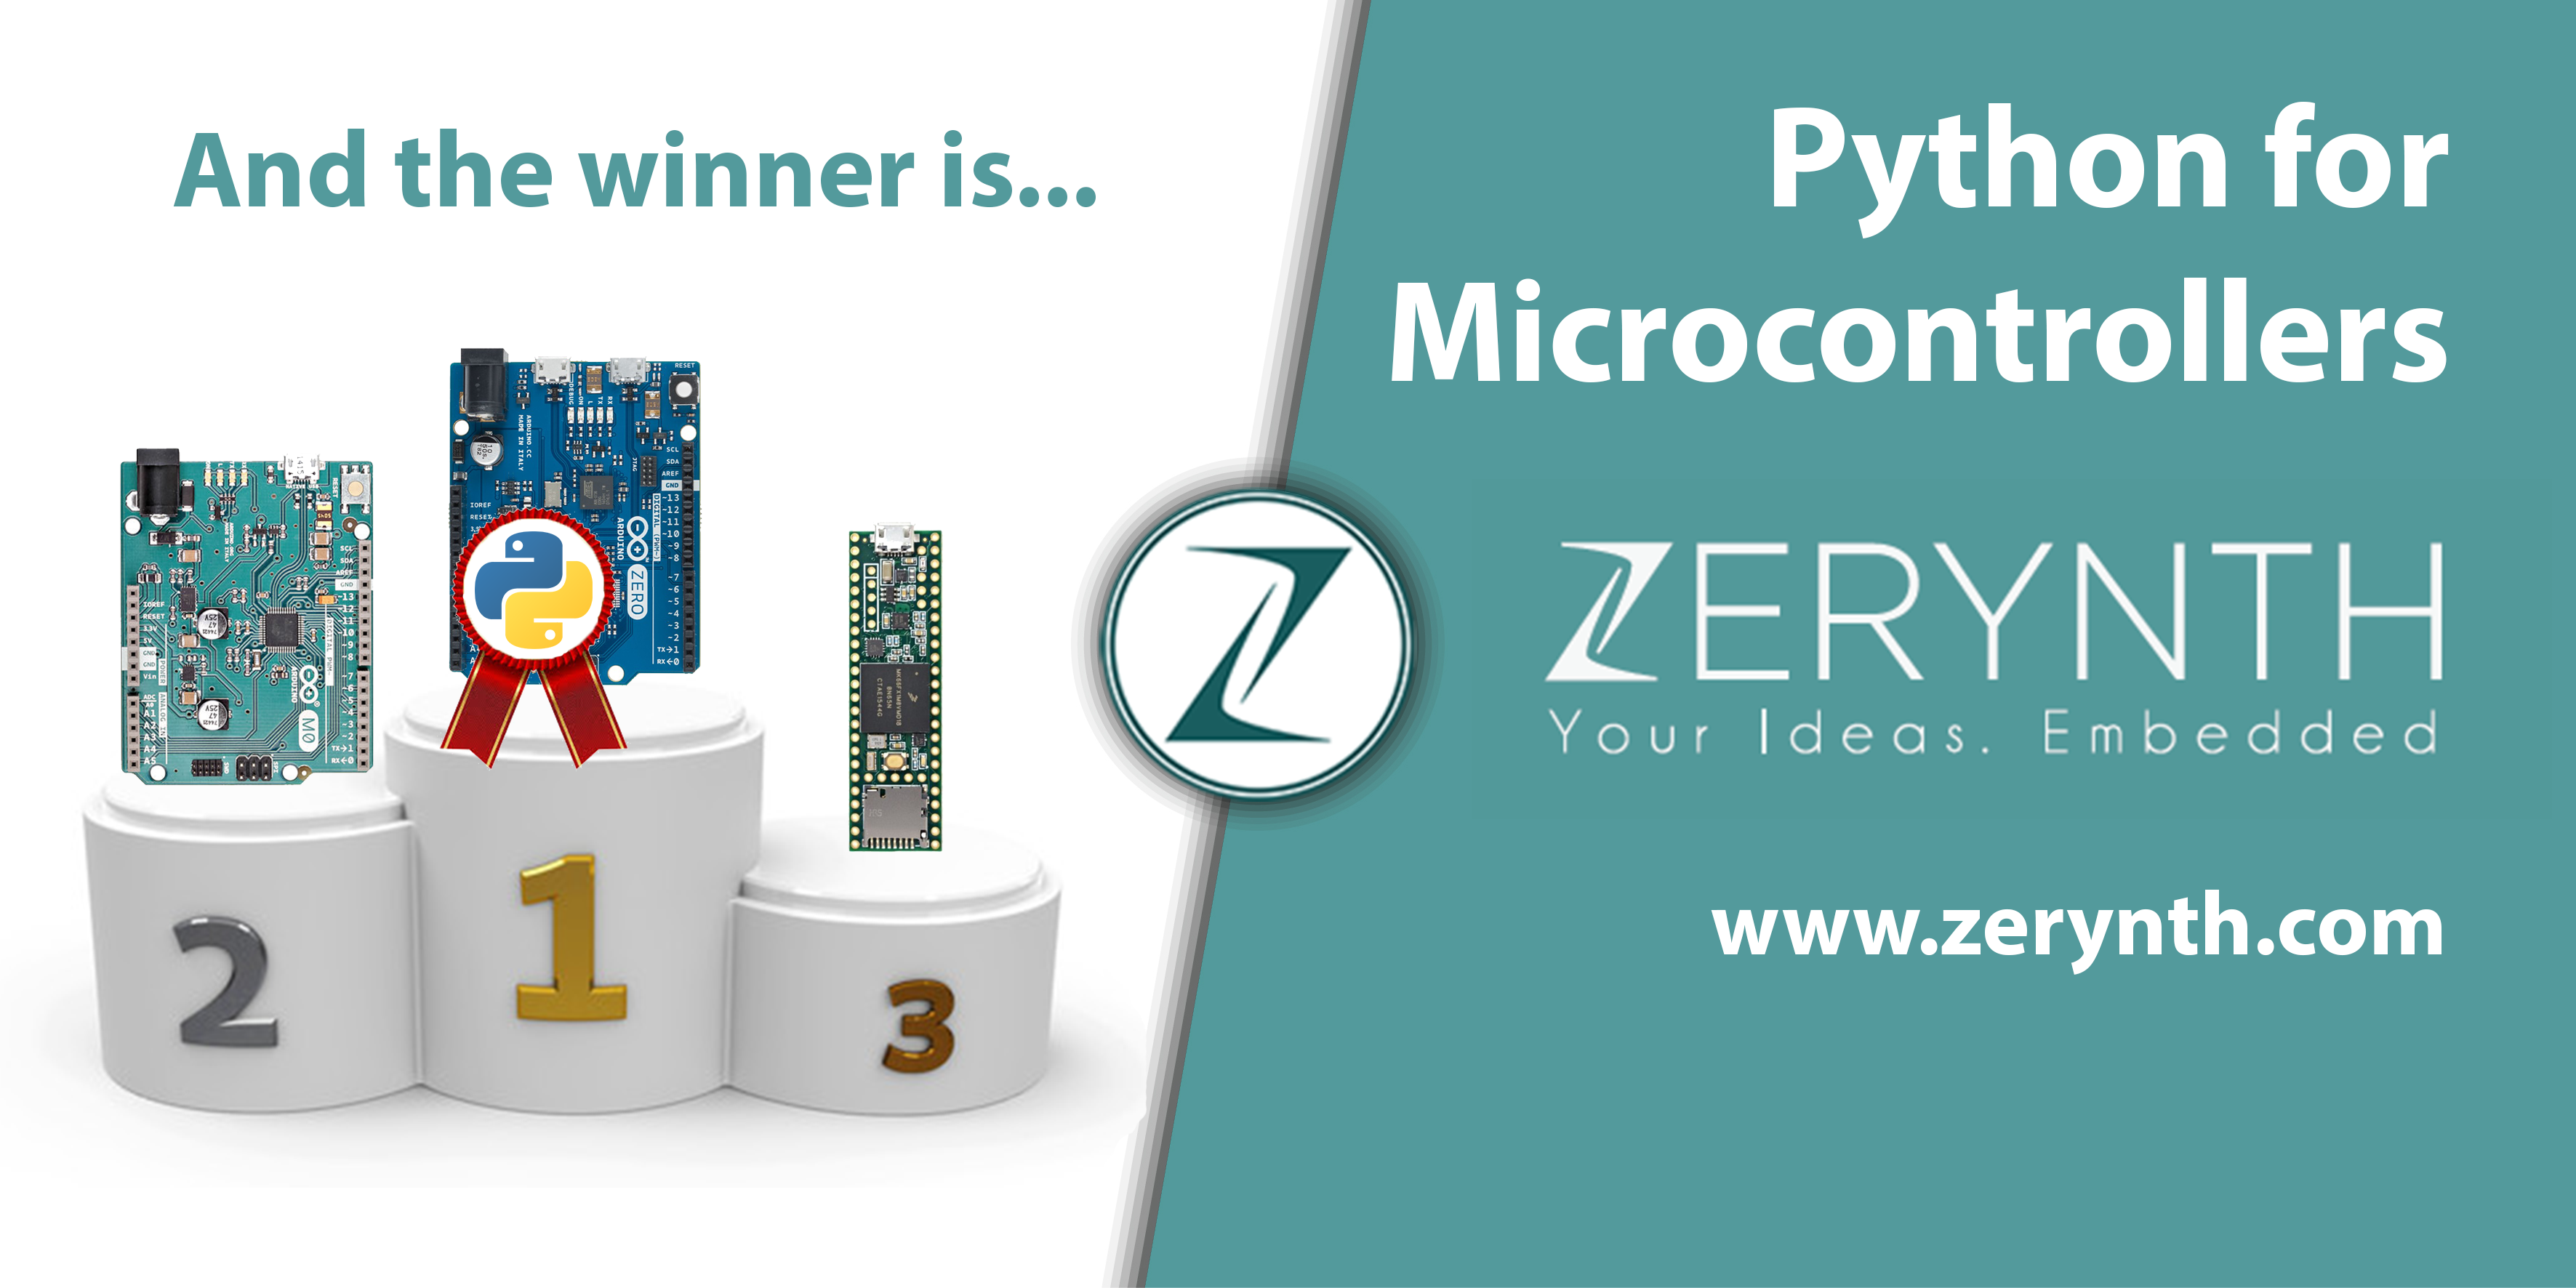 Python for Microcontrollers: and the winner is